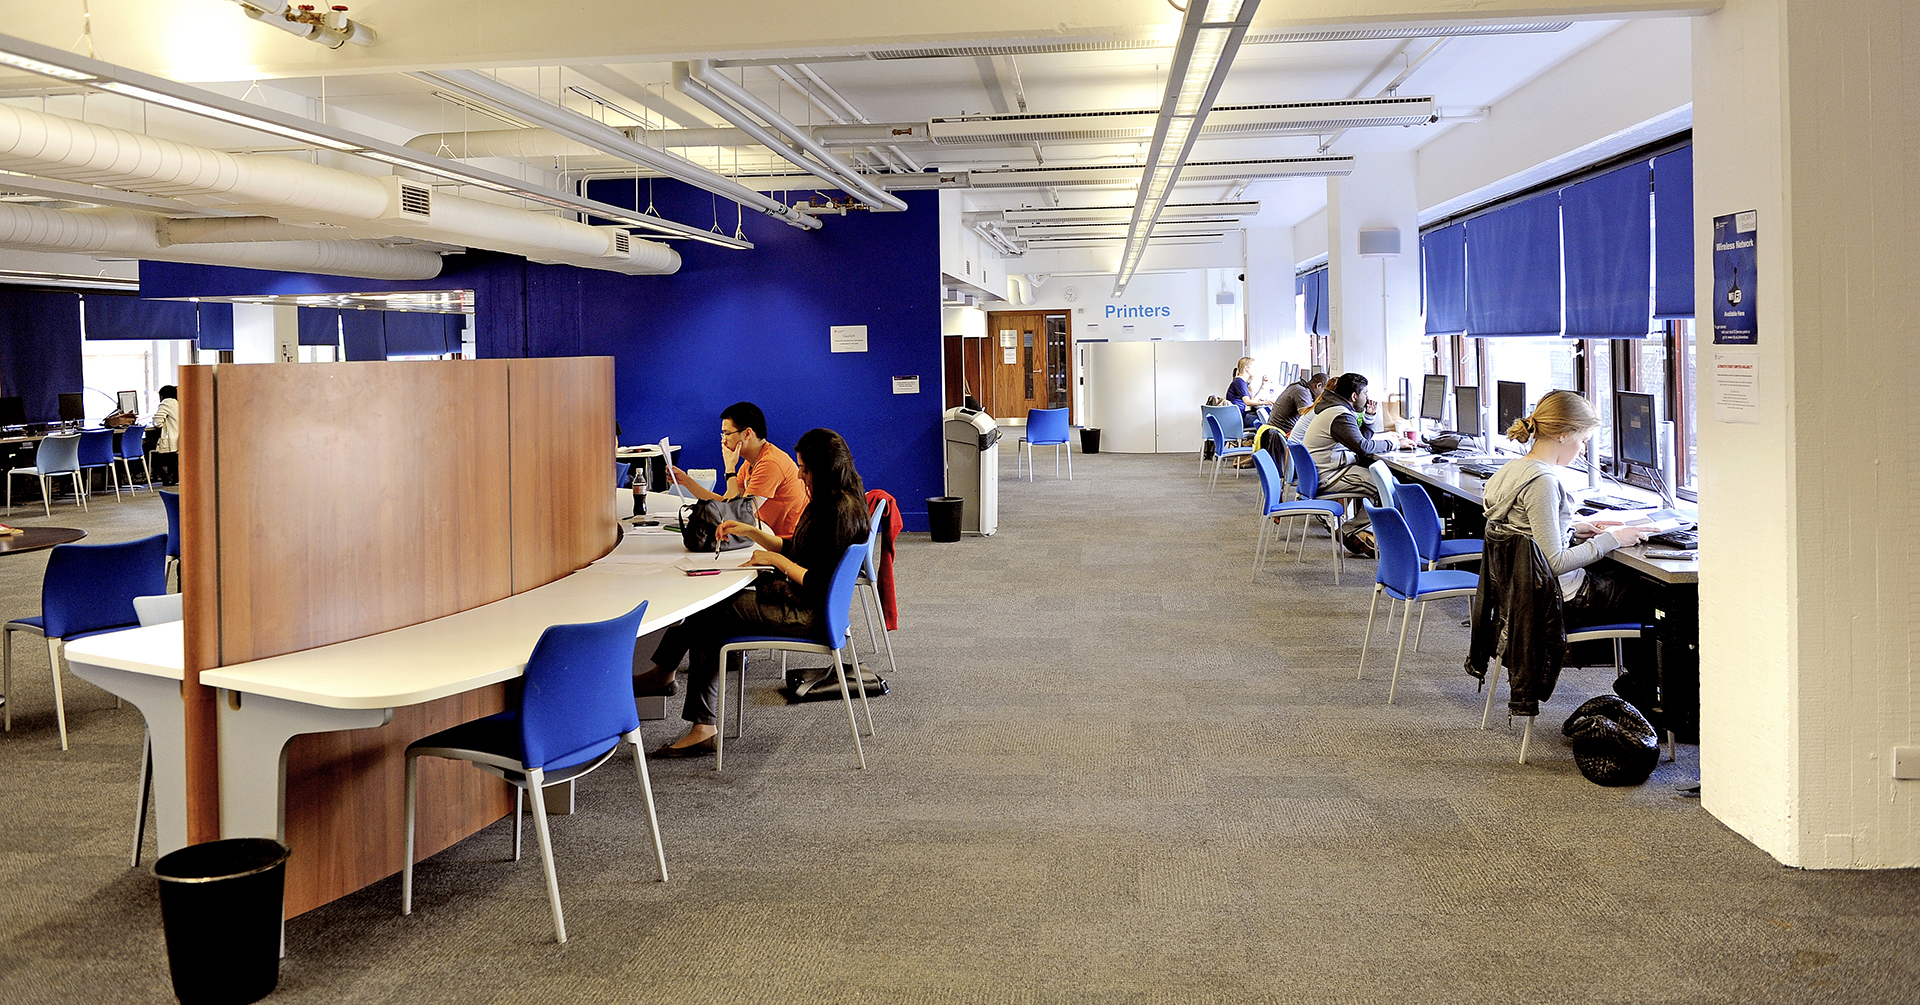 Students at City, University of London using computers in Learning Resource Centre